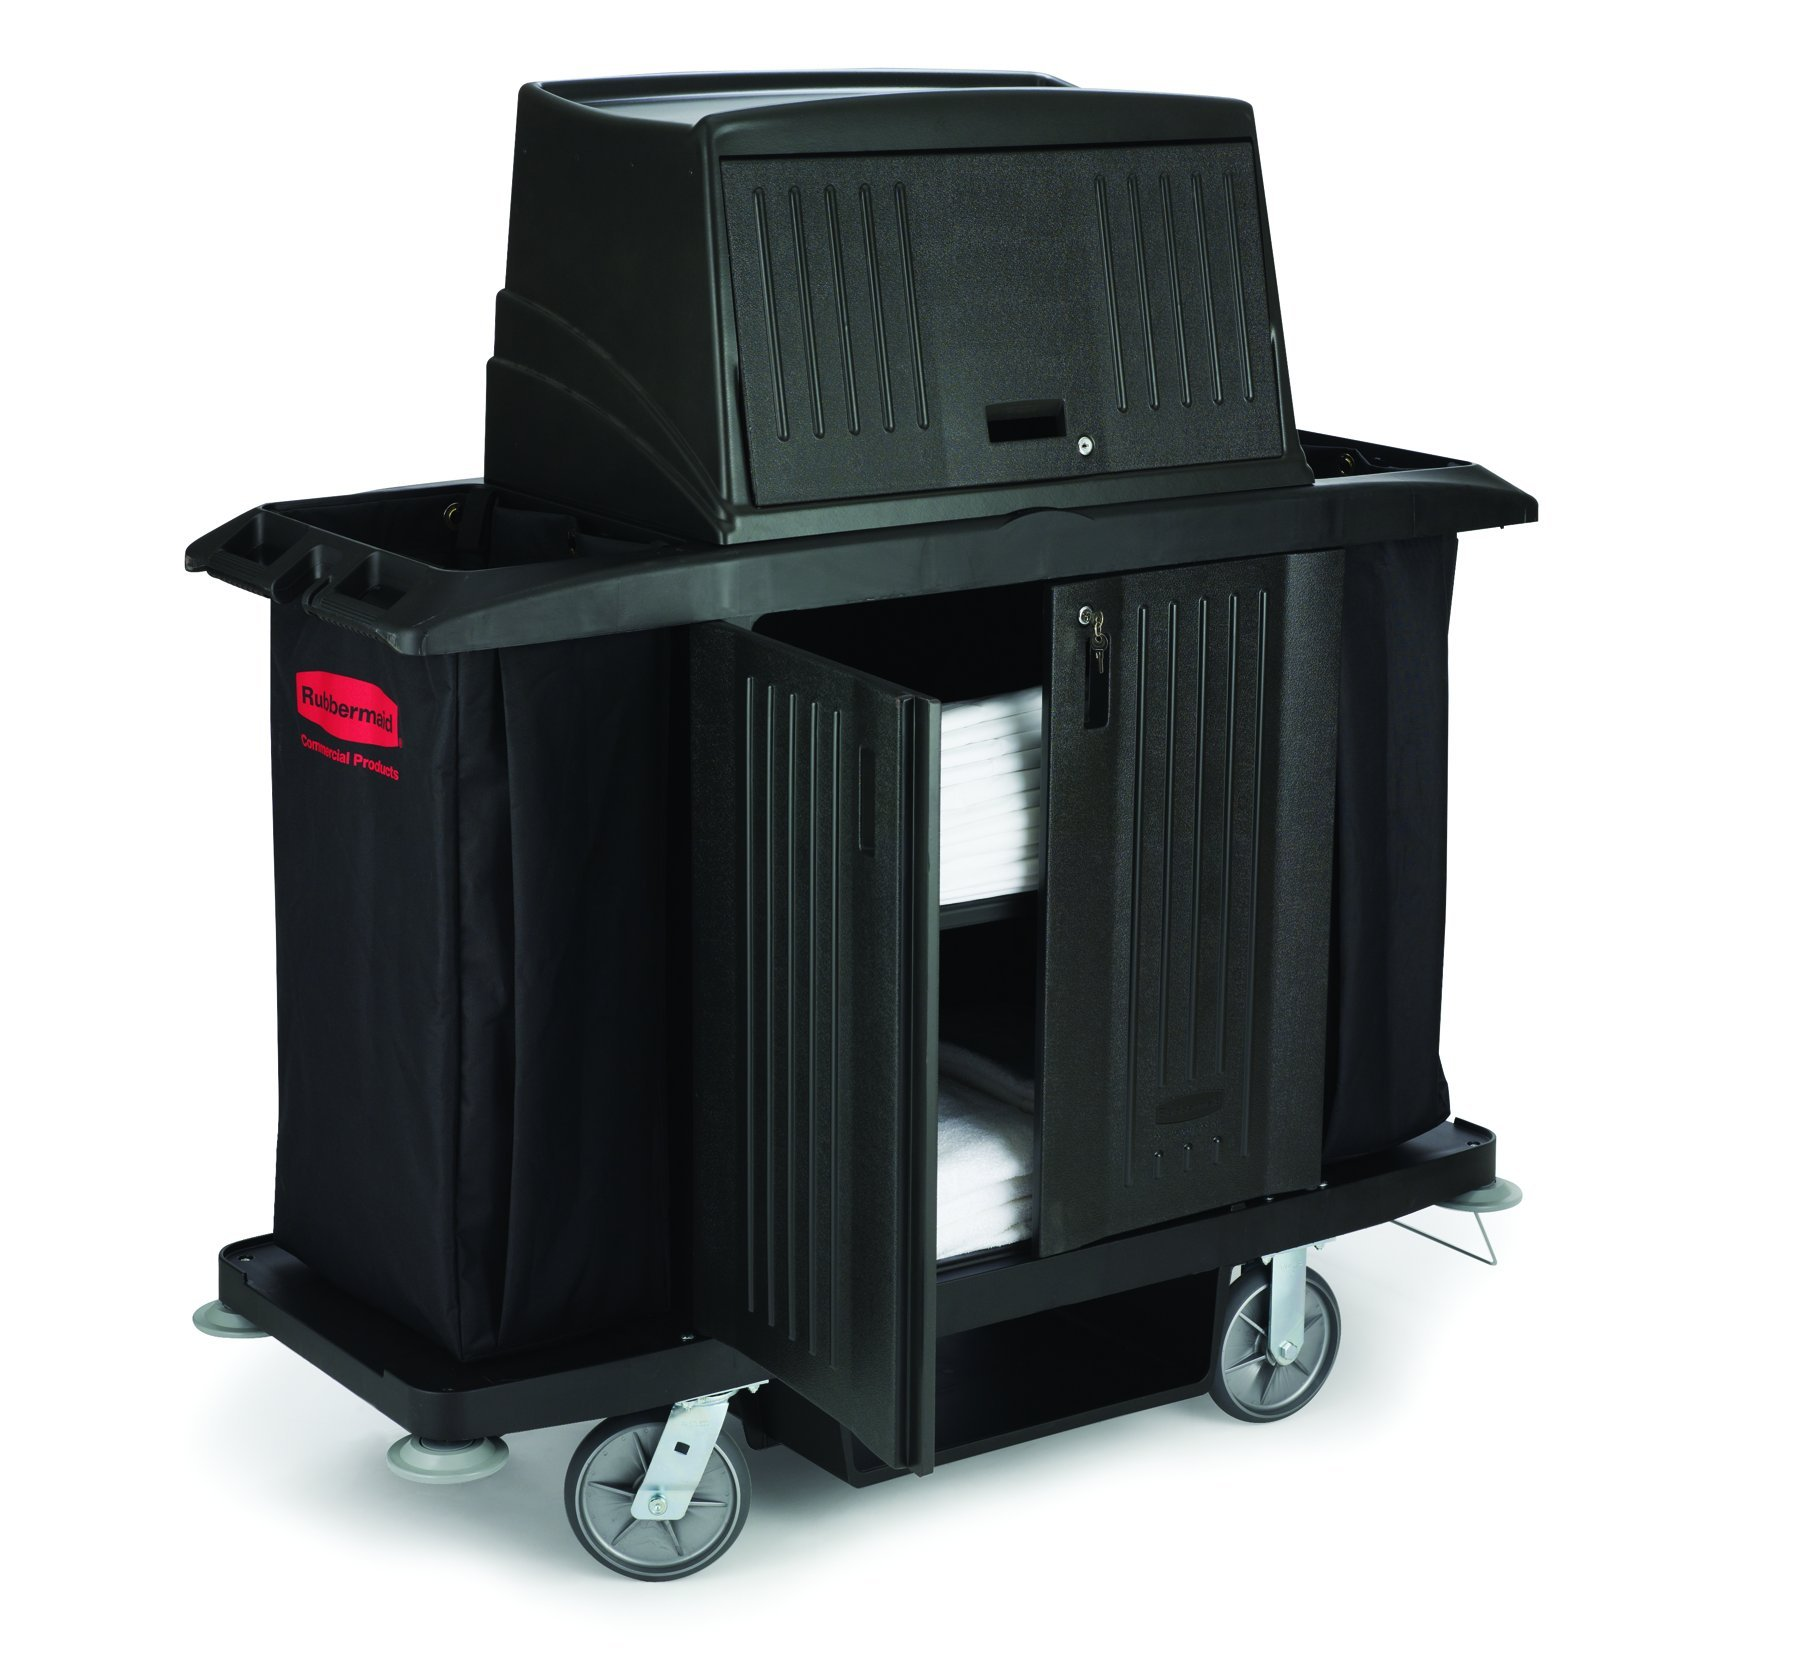 Rubbermaid Commercial Utility Cart with Doors, Black, FG9T1900BLA